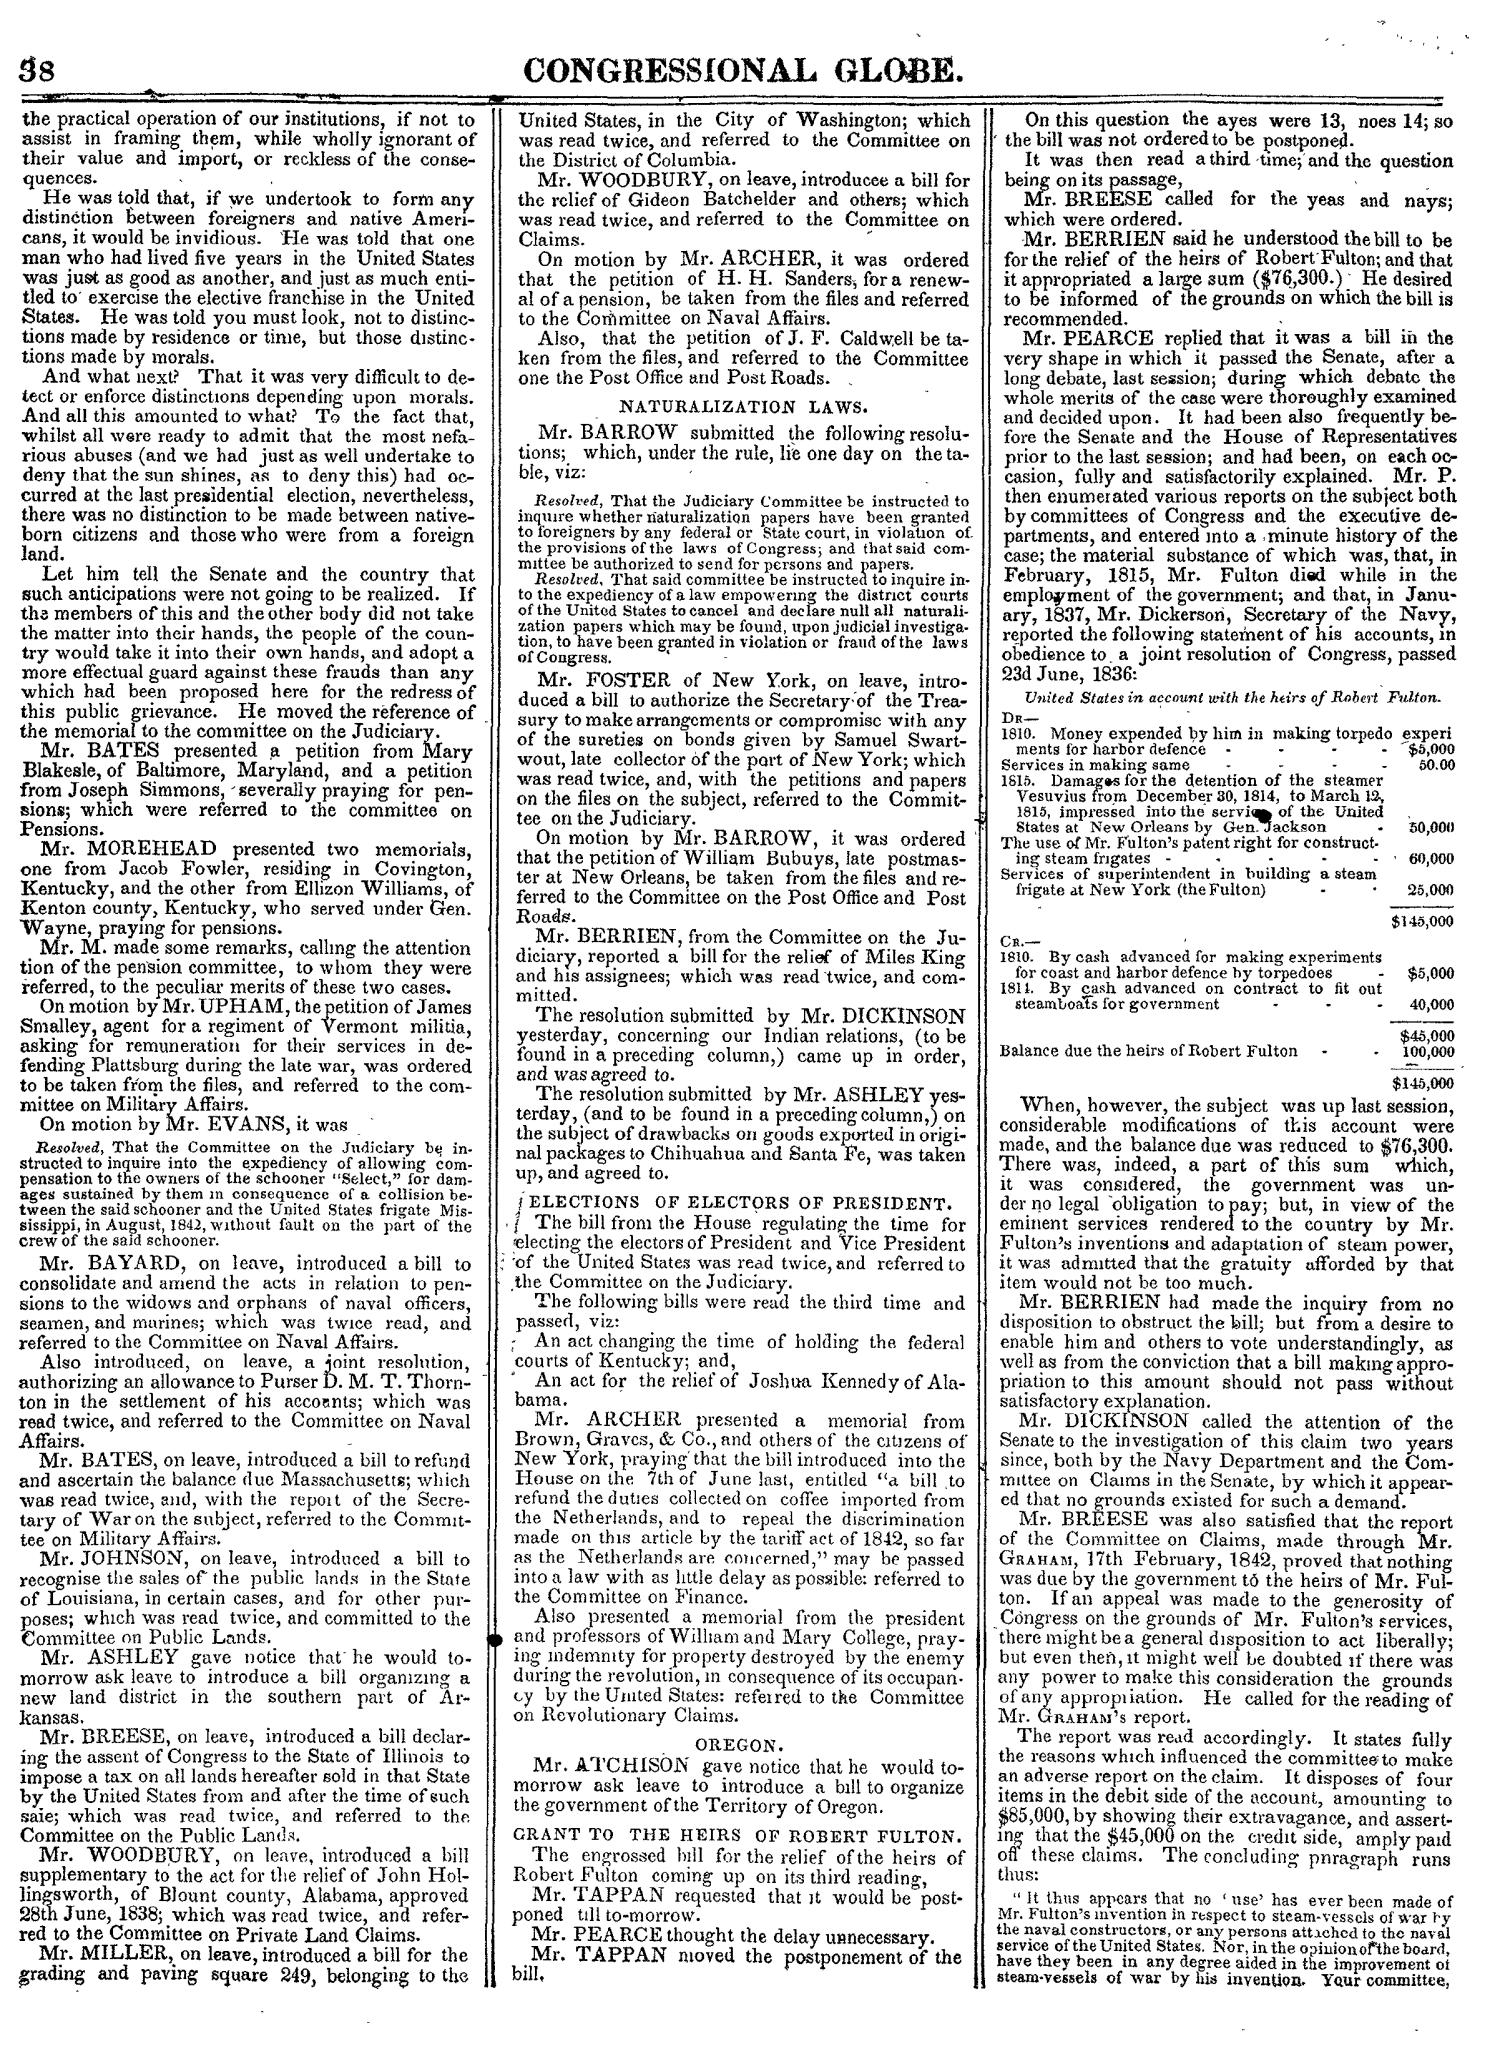 The Congressional Globe, Volume 14: Twenty-Eighth Congress, Second Session                                                                                                      38